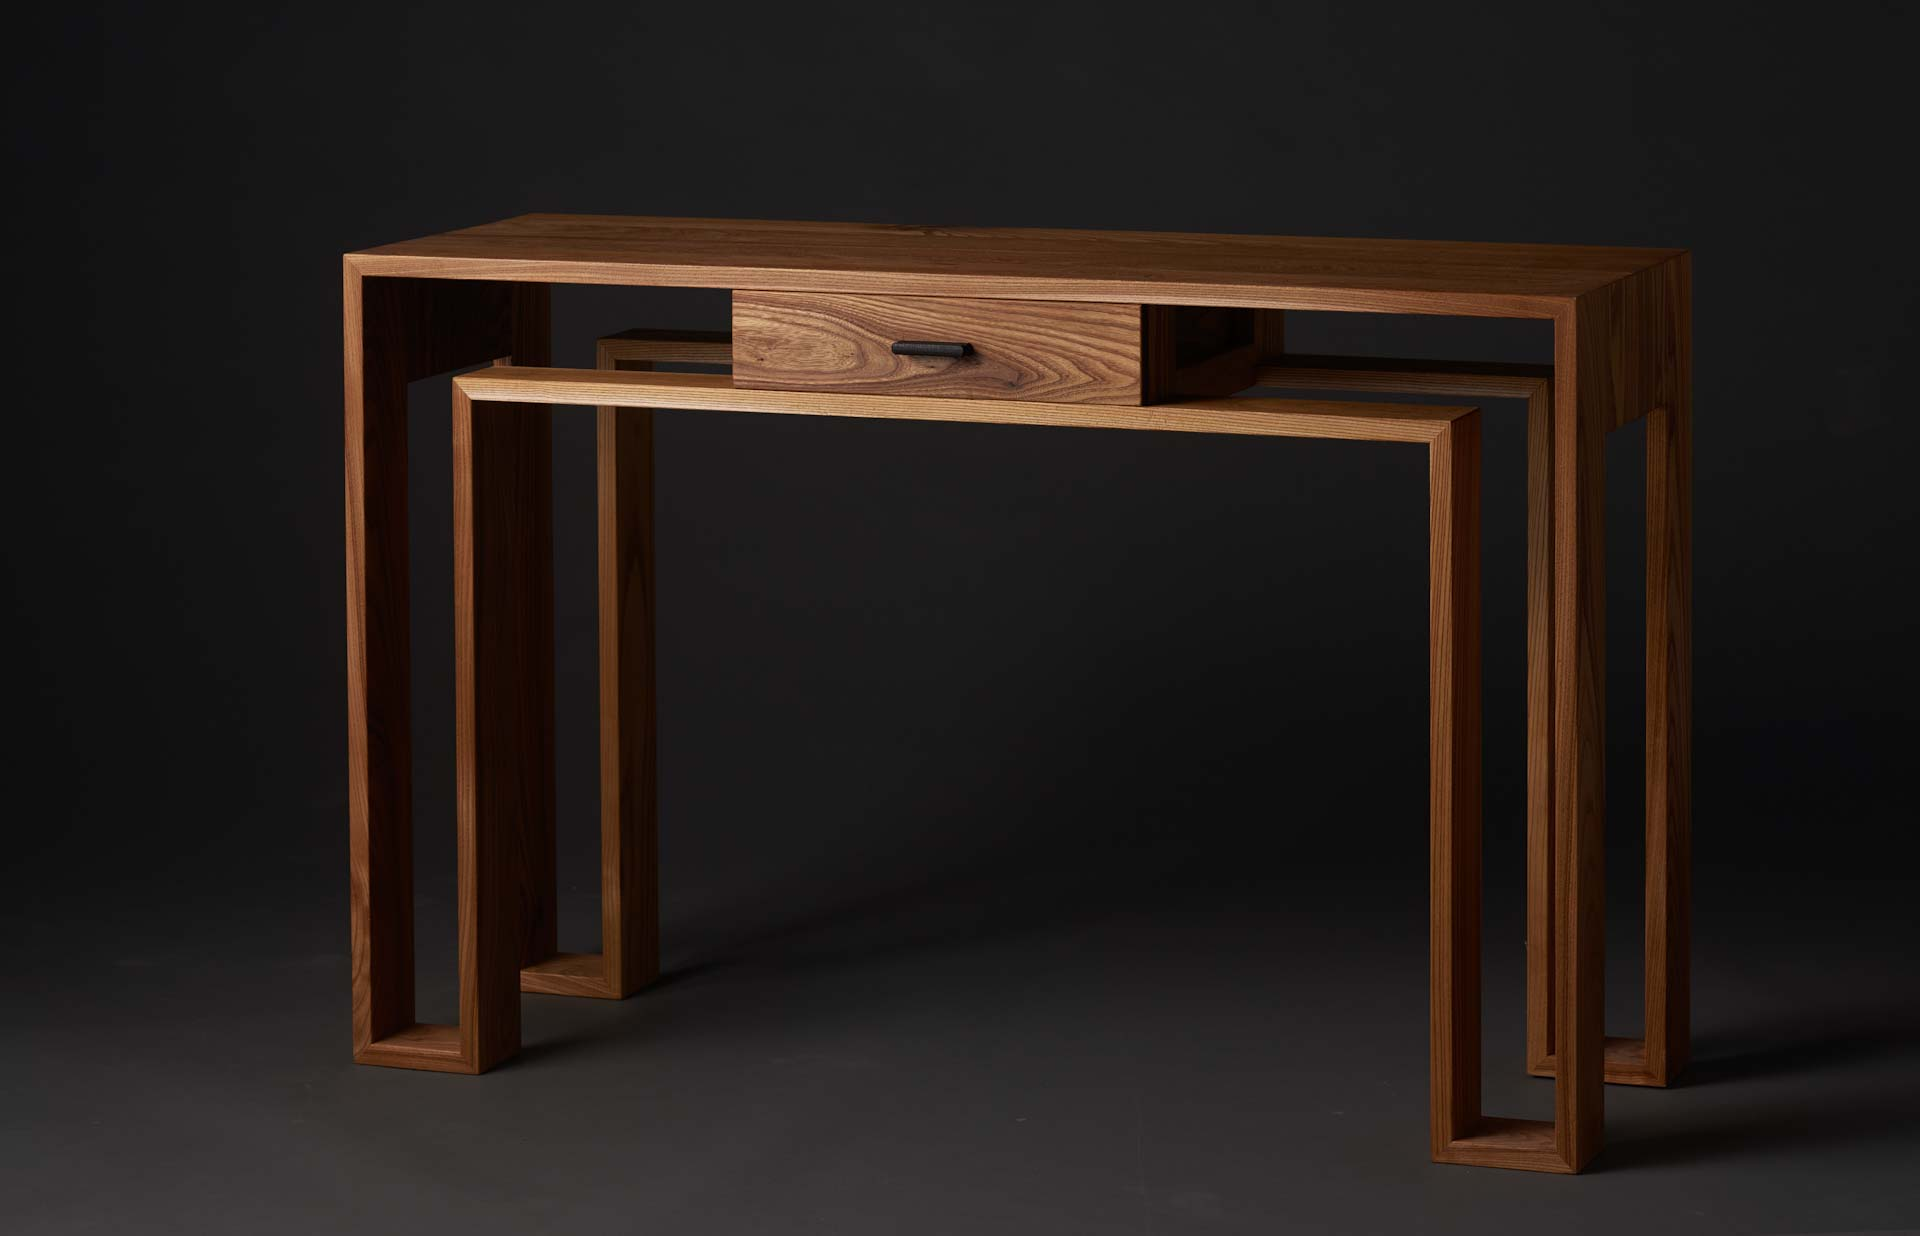 A contenporary styled desk in elm, designed and made by Peter Deij. It has a single drawer and a frame that traces an outline rather than solid legs.